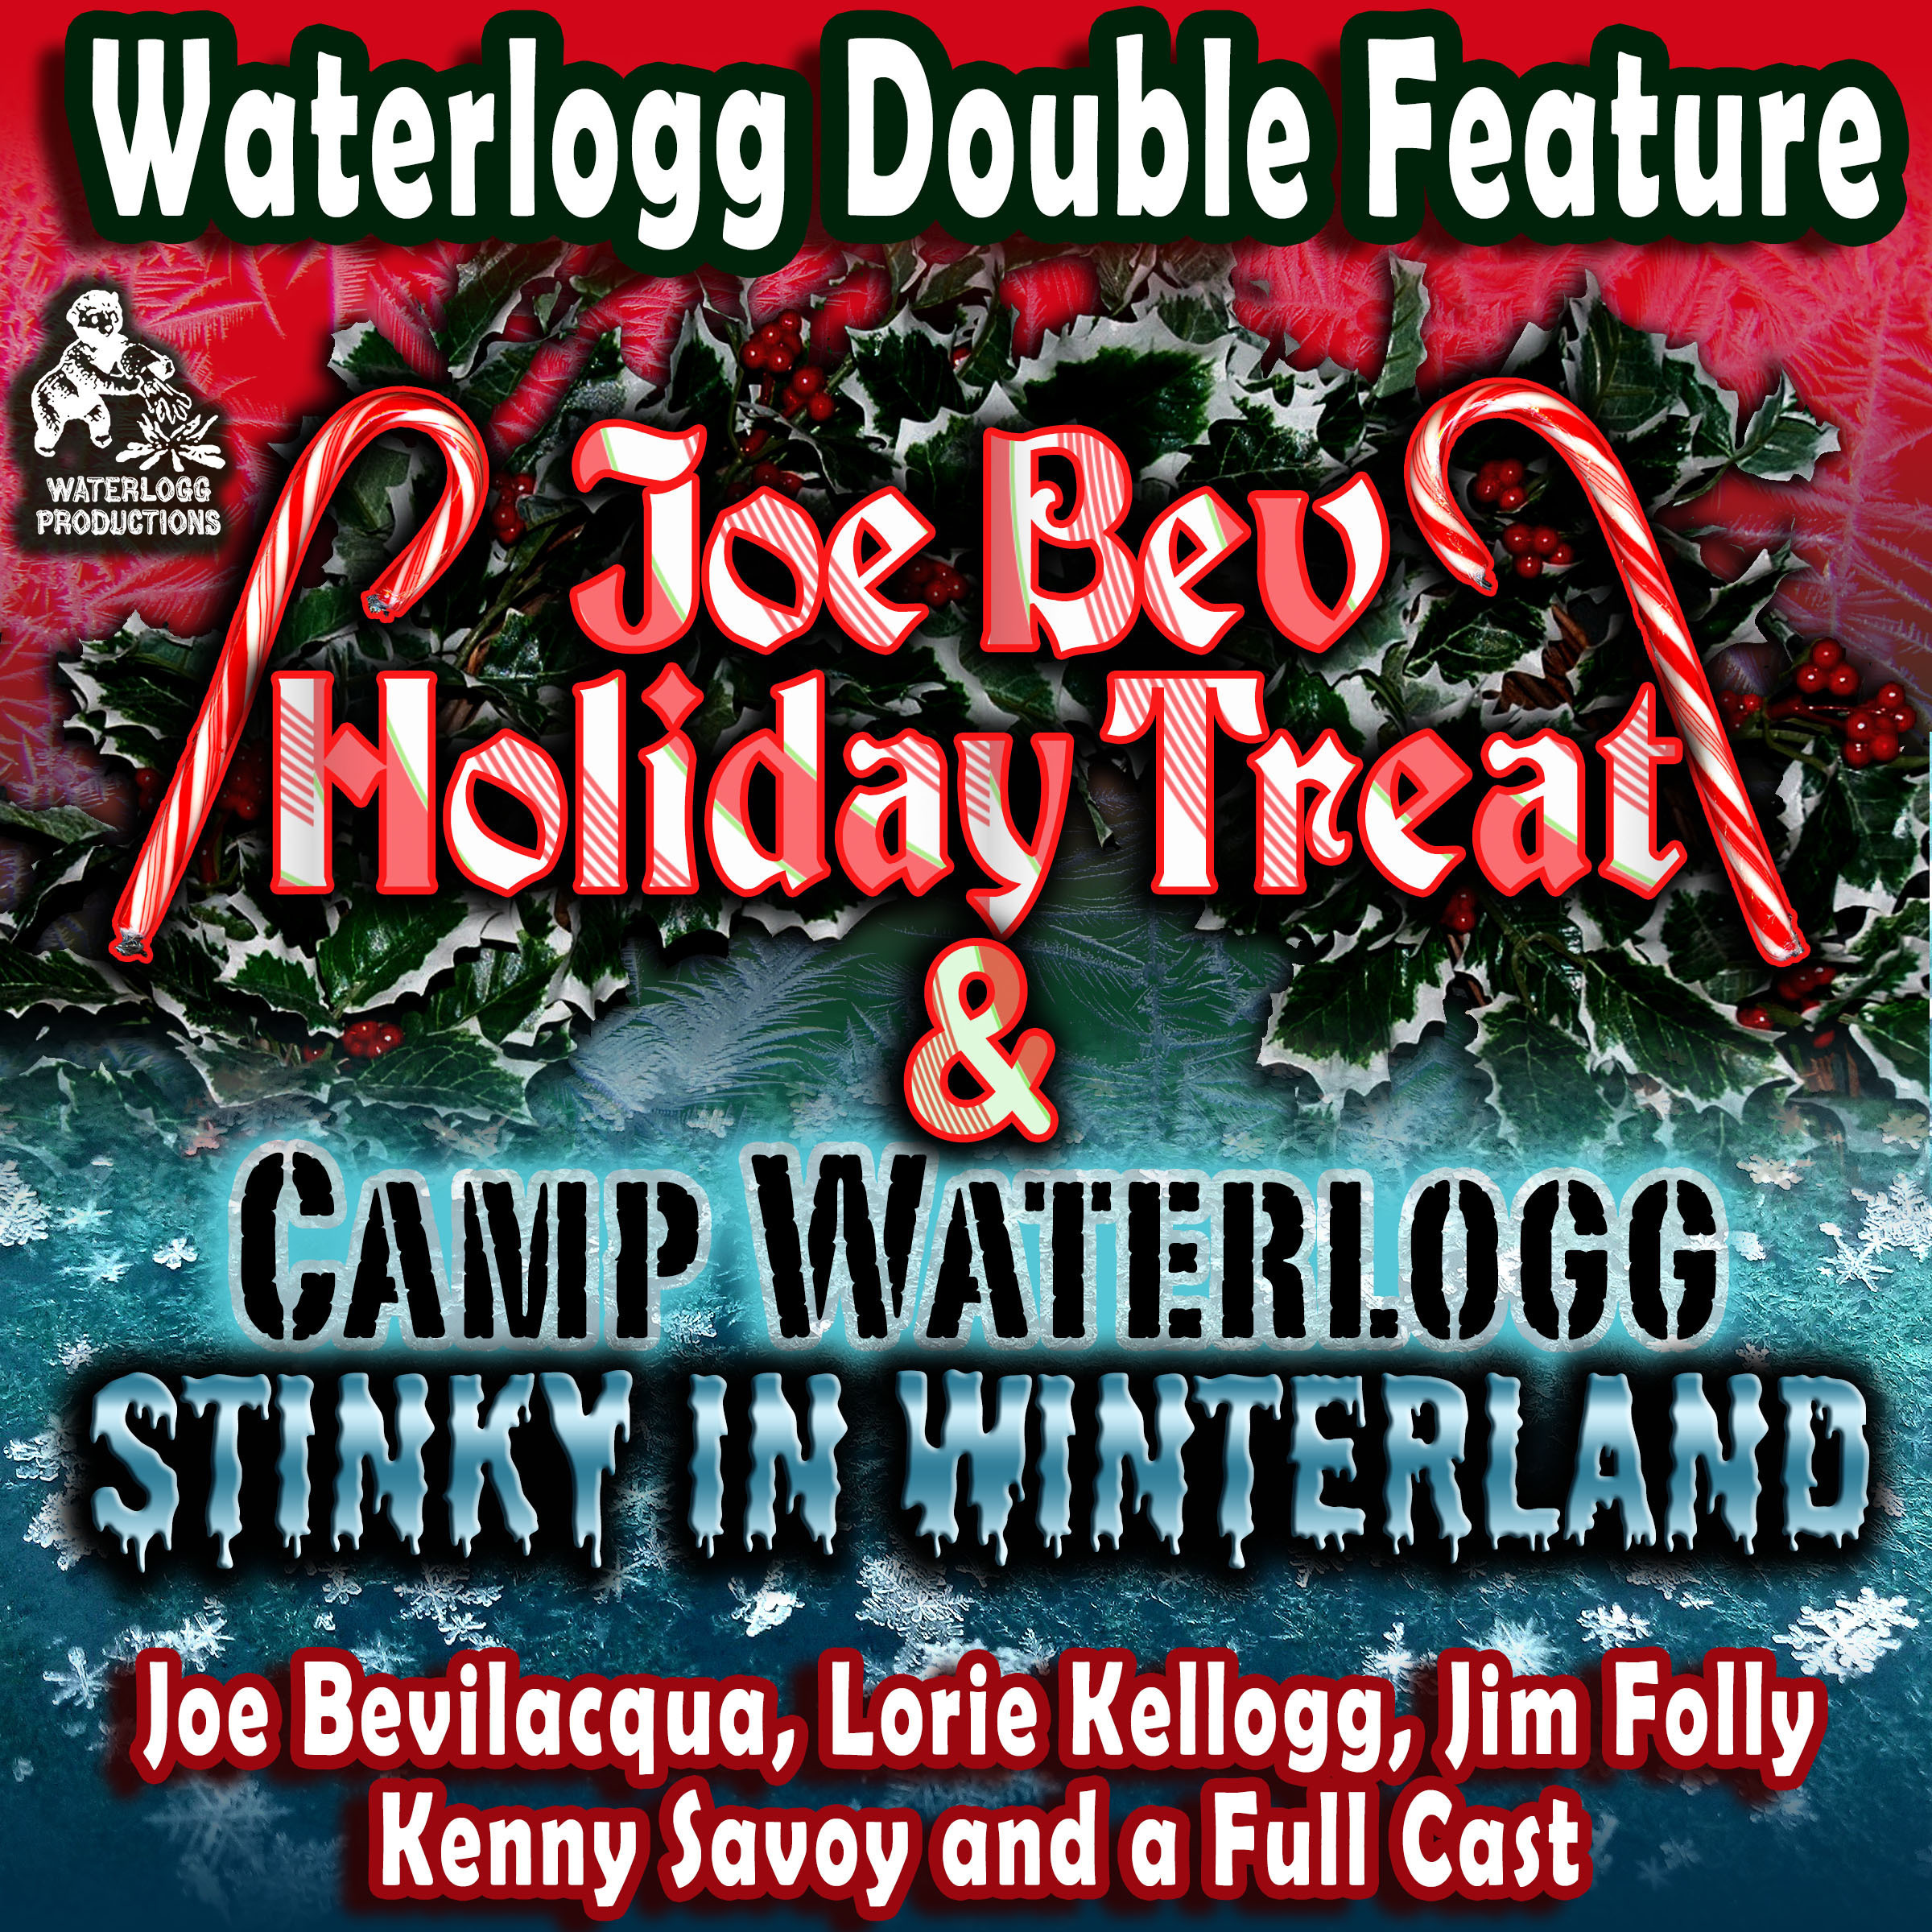 Printable A Waterlogg Double Feature: The Joe Bev Holiday Treat and the Camp Waterlogg Summer Freeze Special, Stinky in Winterland Audiobook Cover Art